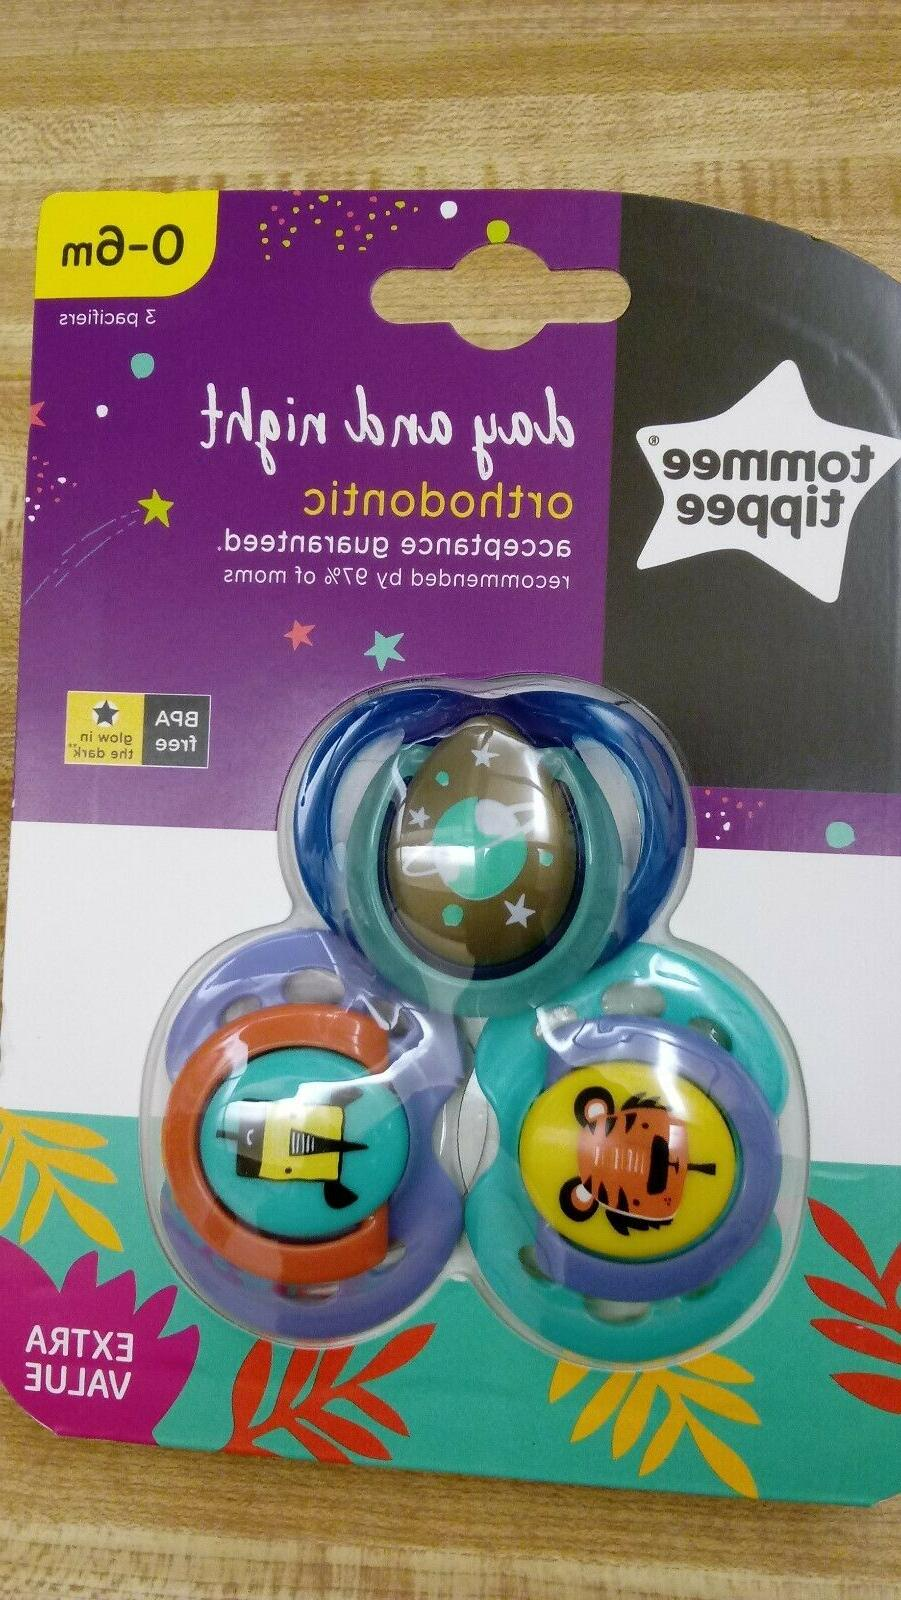 day and night orthodontic pacifiers 0 6m